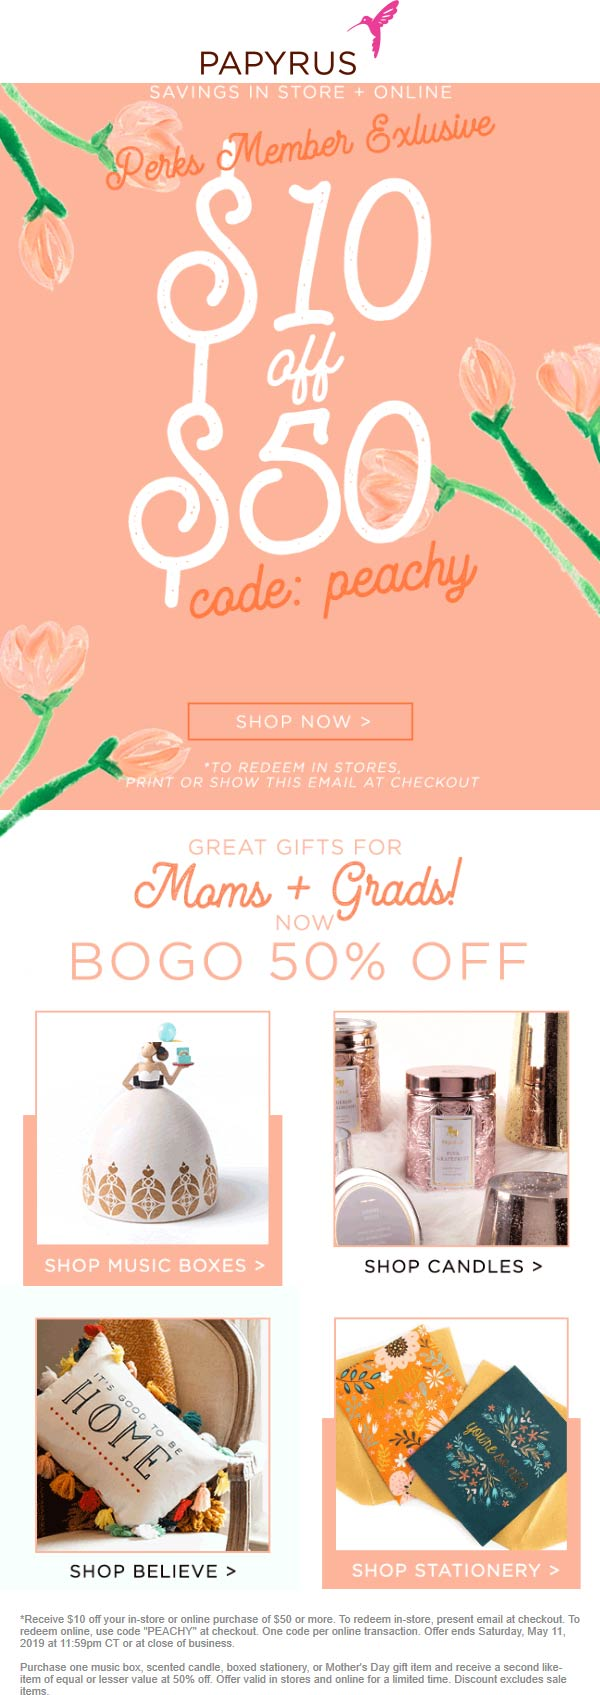 Papyrus coupons & promo code for [July 2020]